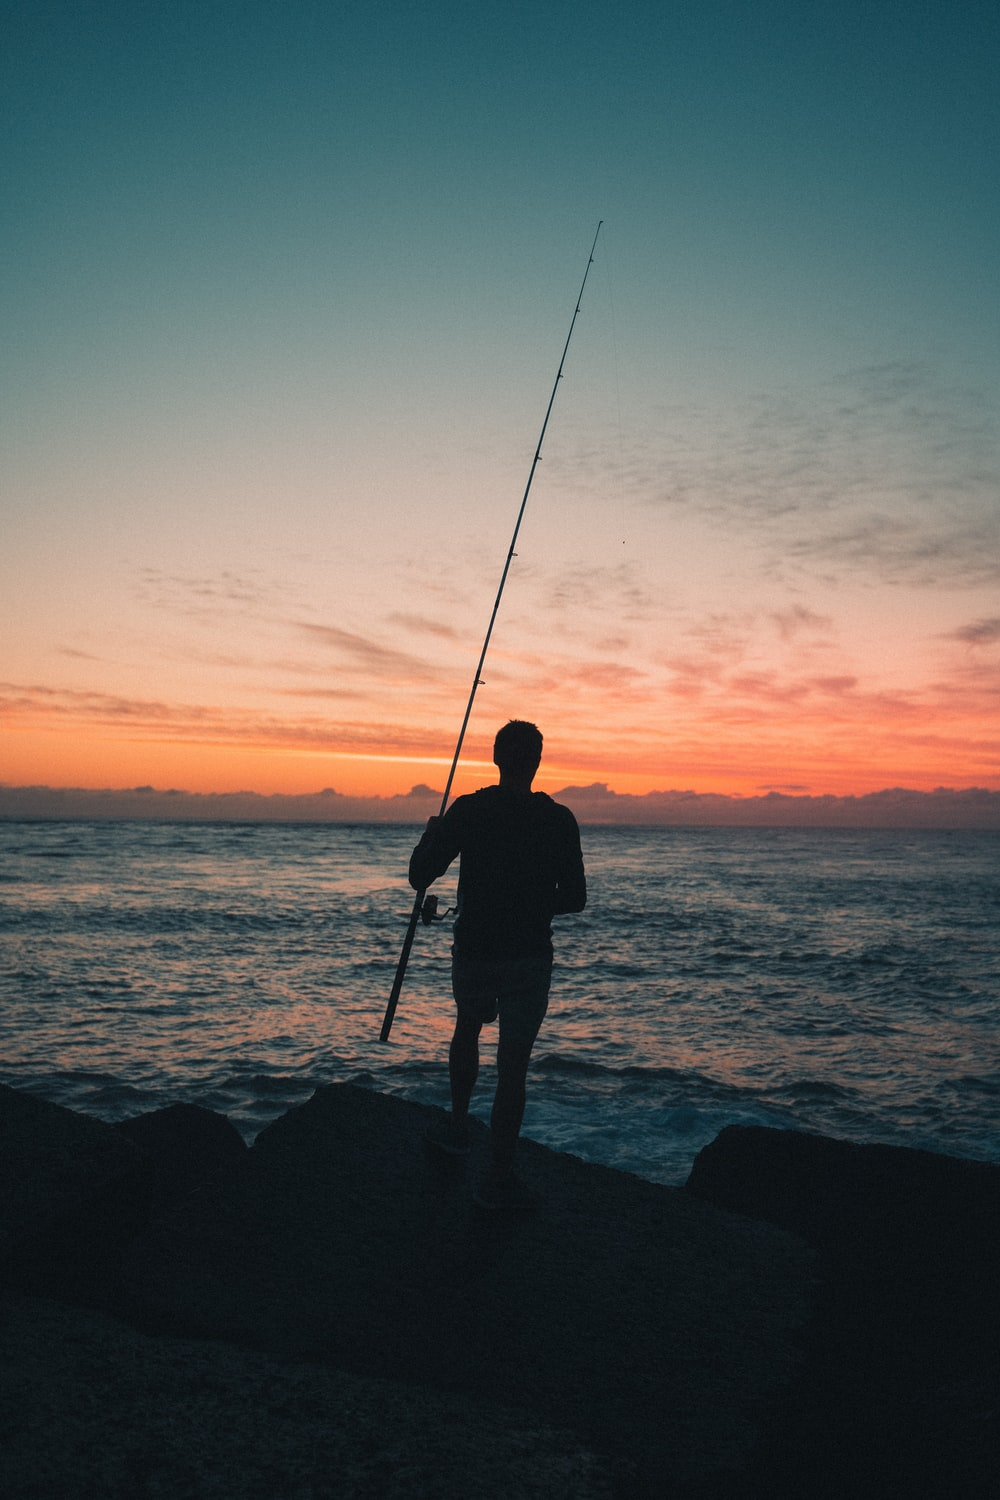 silhouette of man fishing on sea during sunset